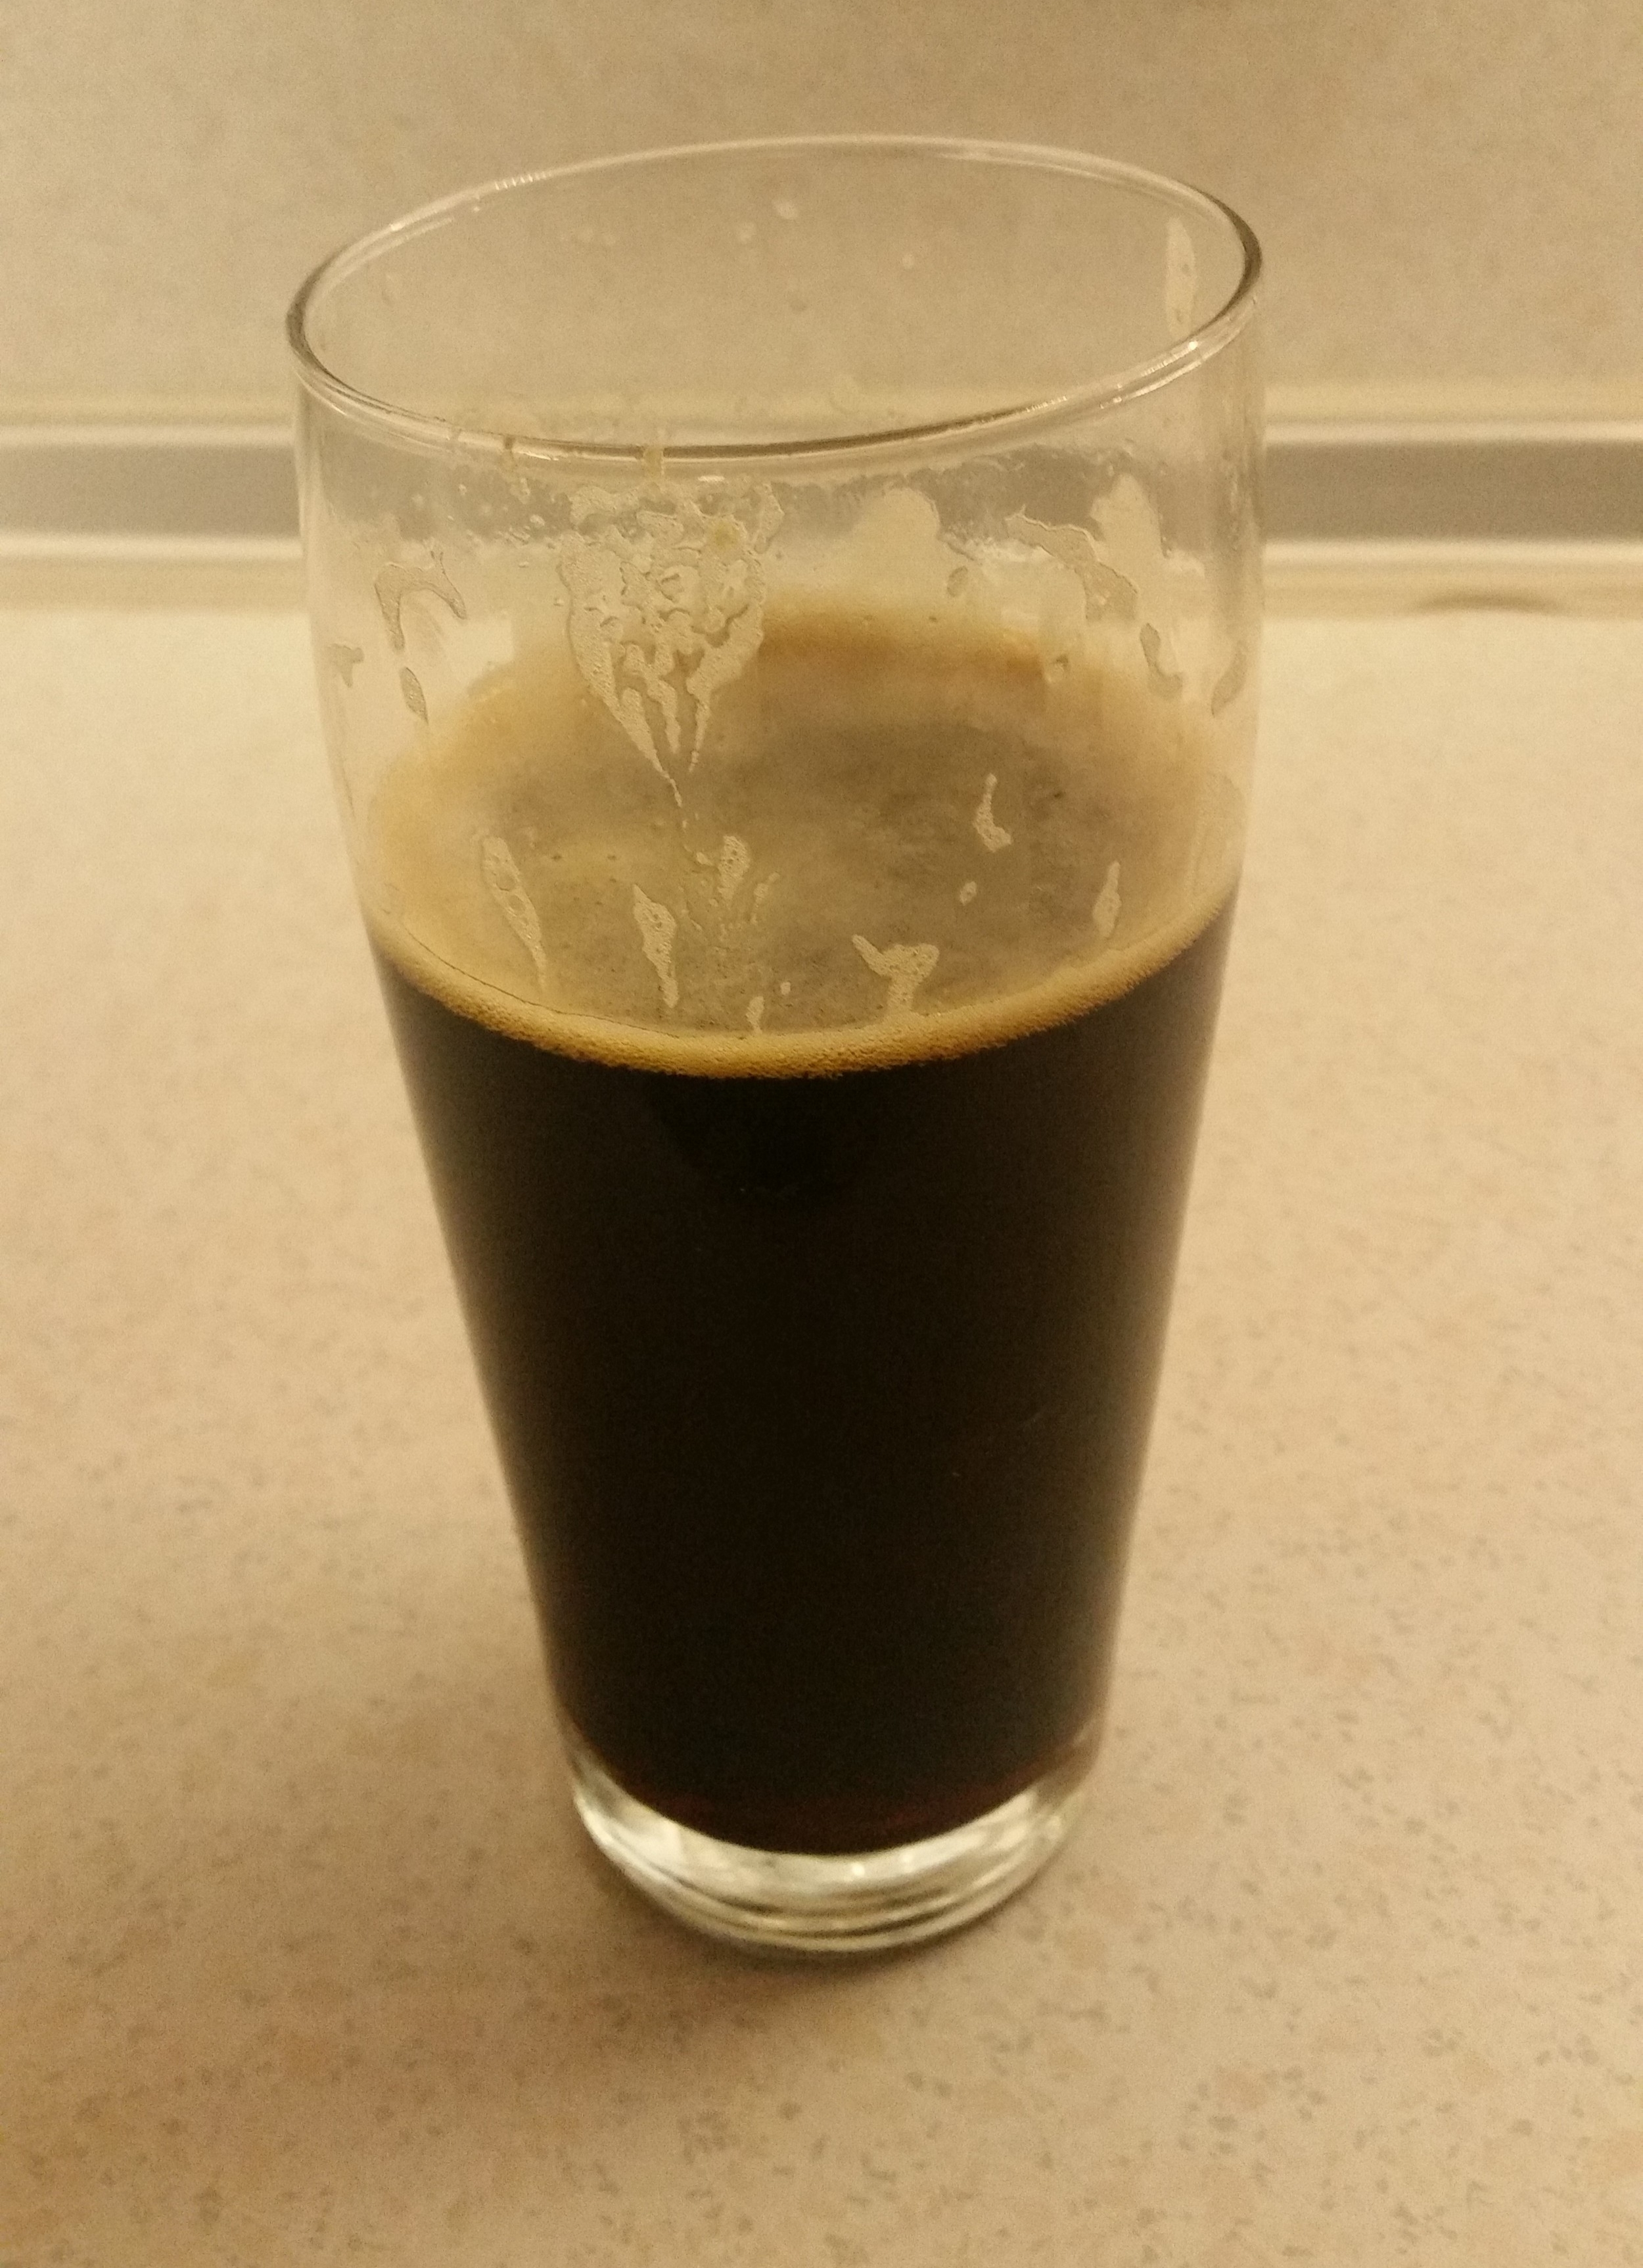 Fuller's London Black Cab Stout in nonic